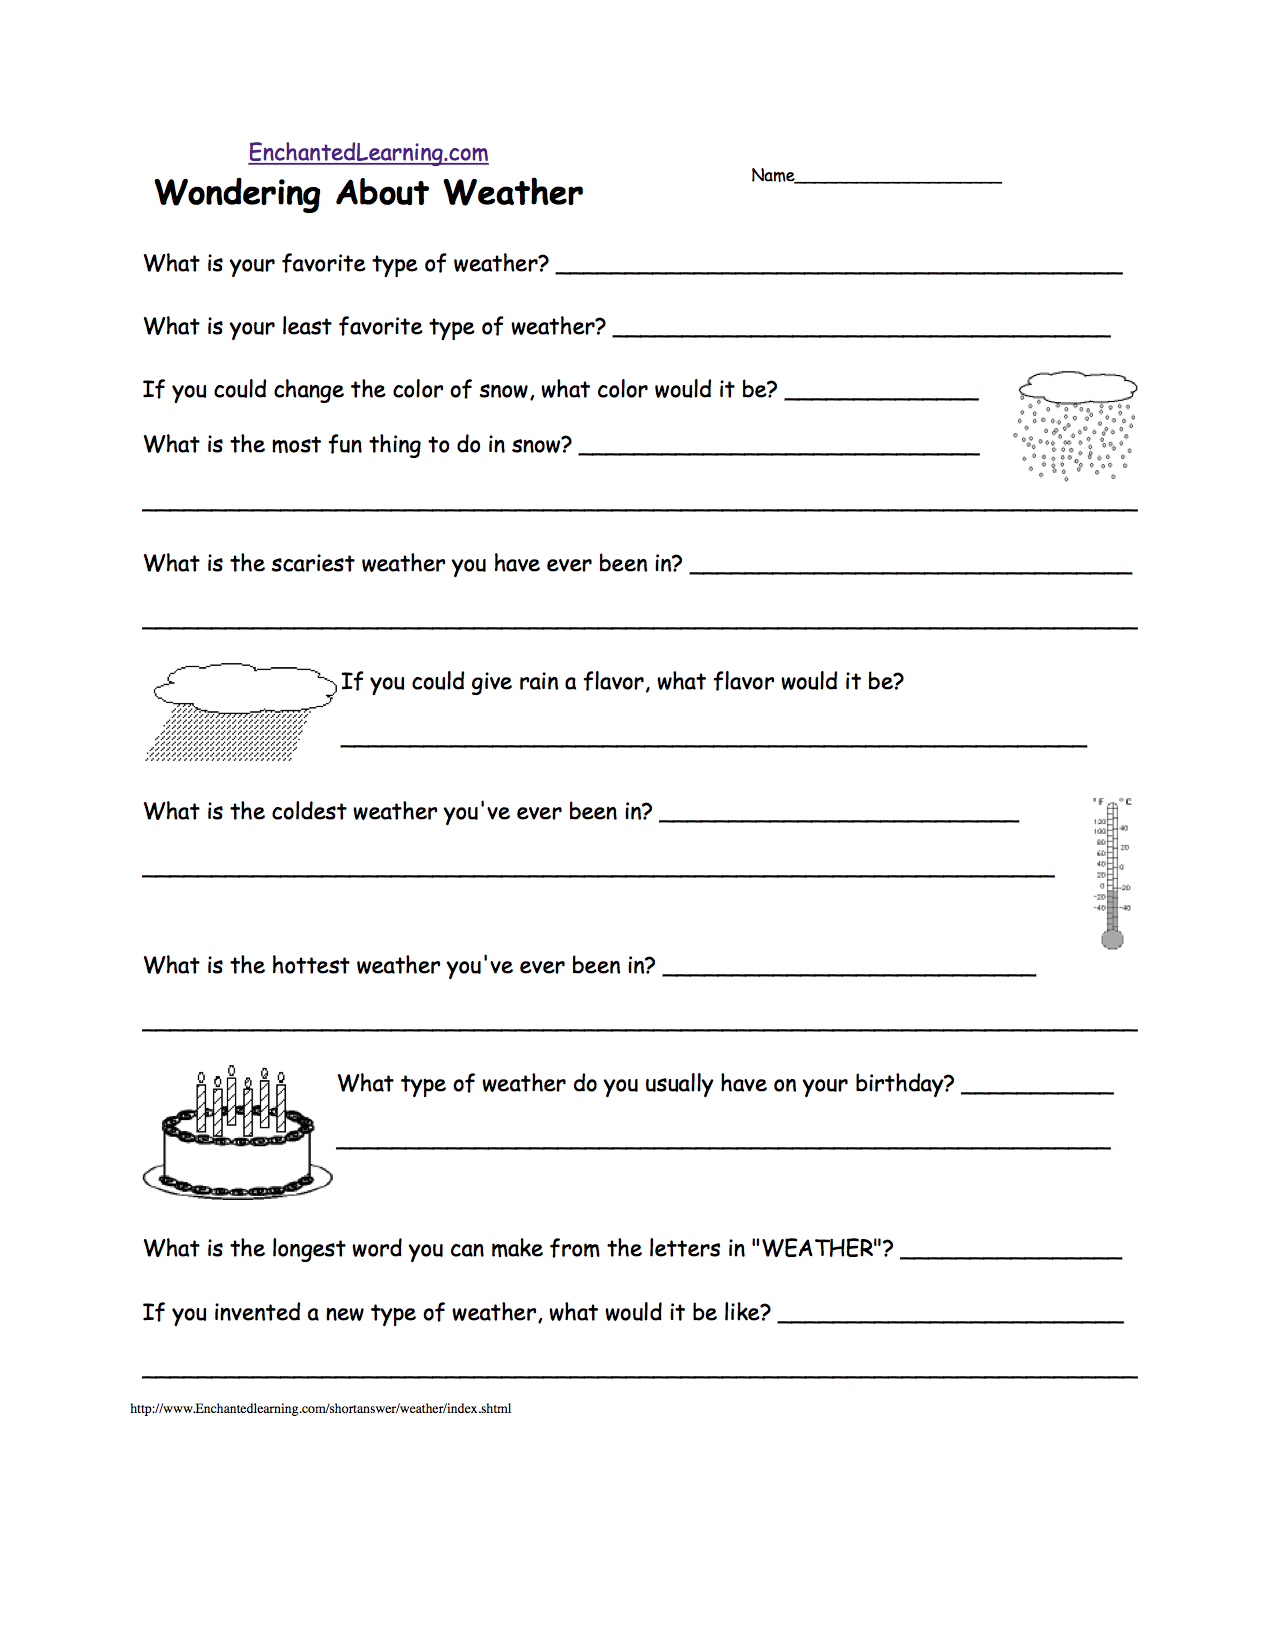 worksheet Precipitation Worksheet weather related activities at enchantedlearning com weather